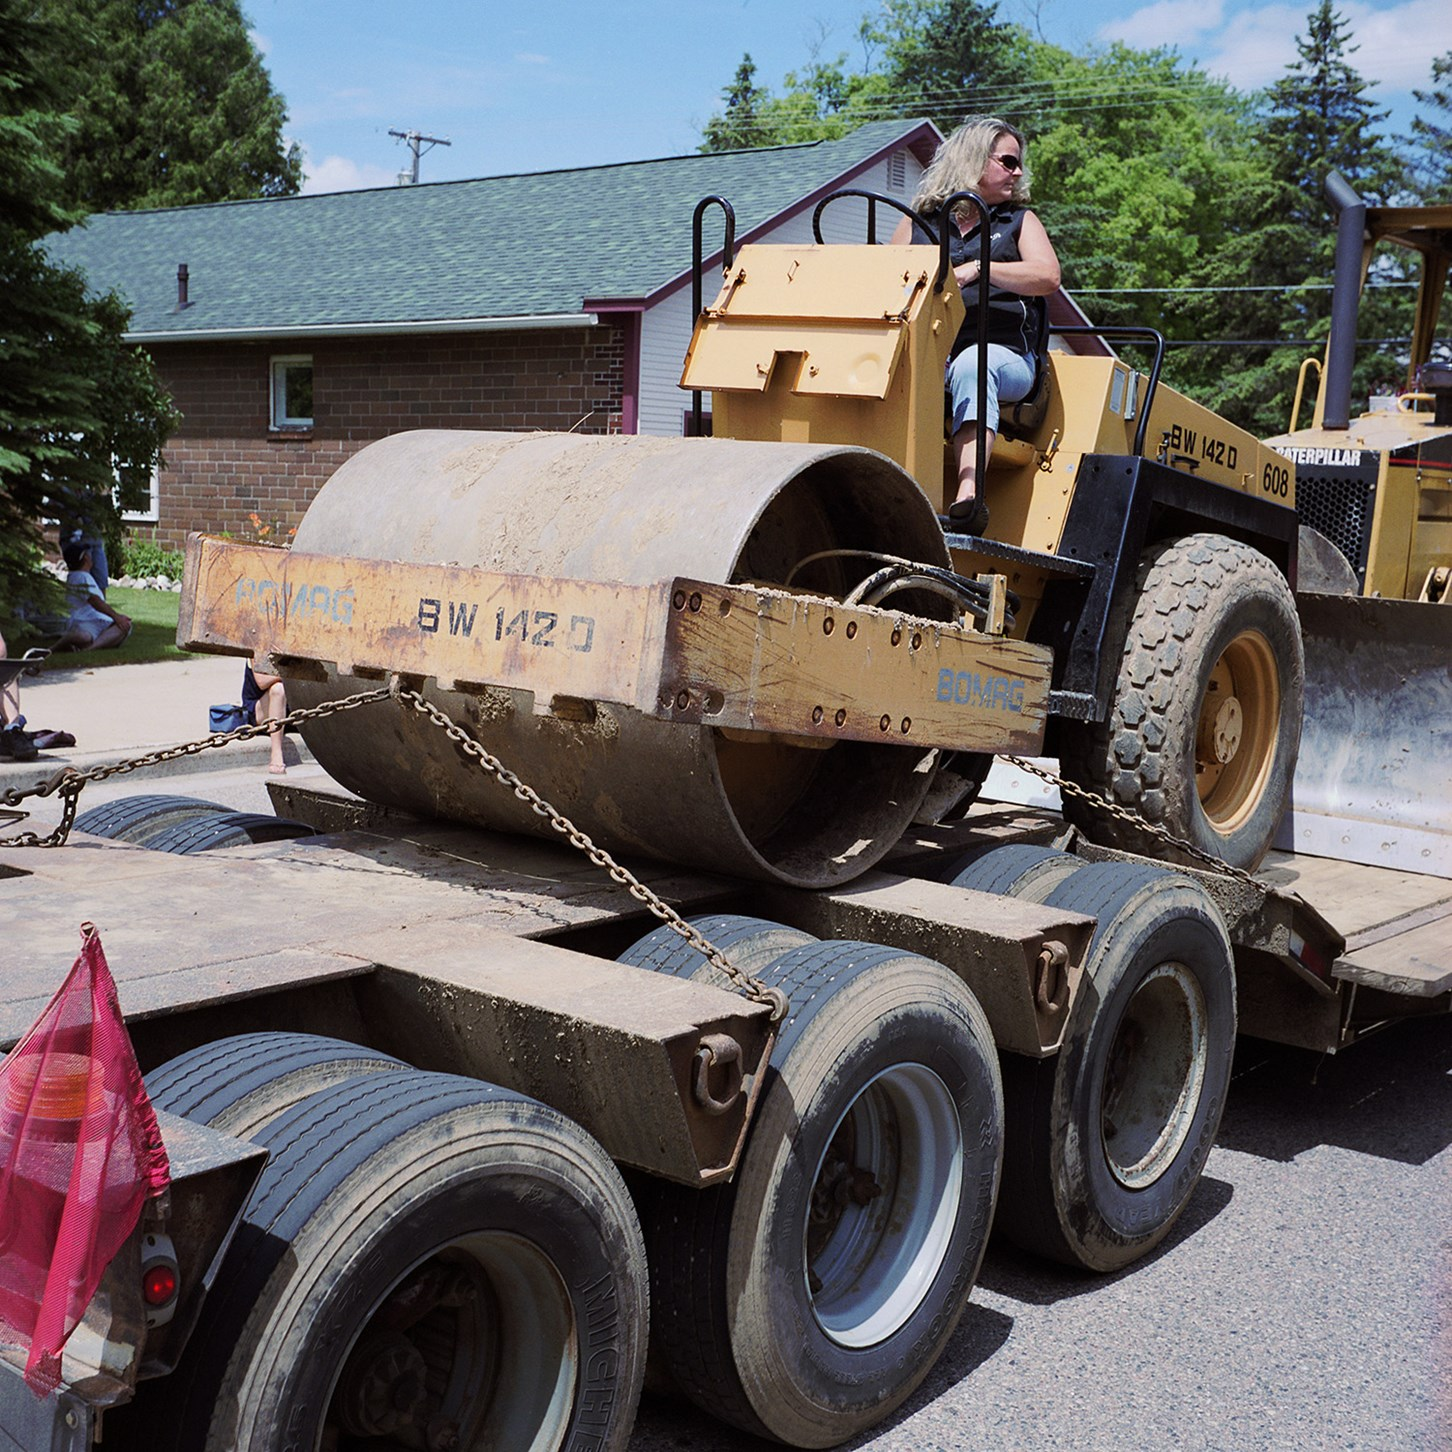 Woman On A Steamroller On A Trailer, Birnamwood, Wisconsin, June 2010